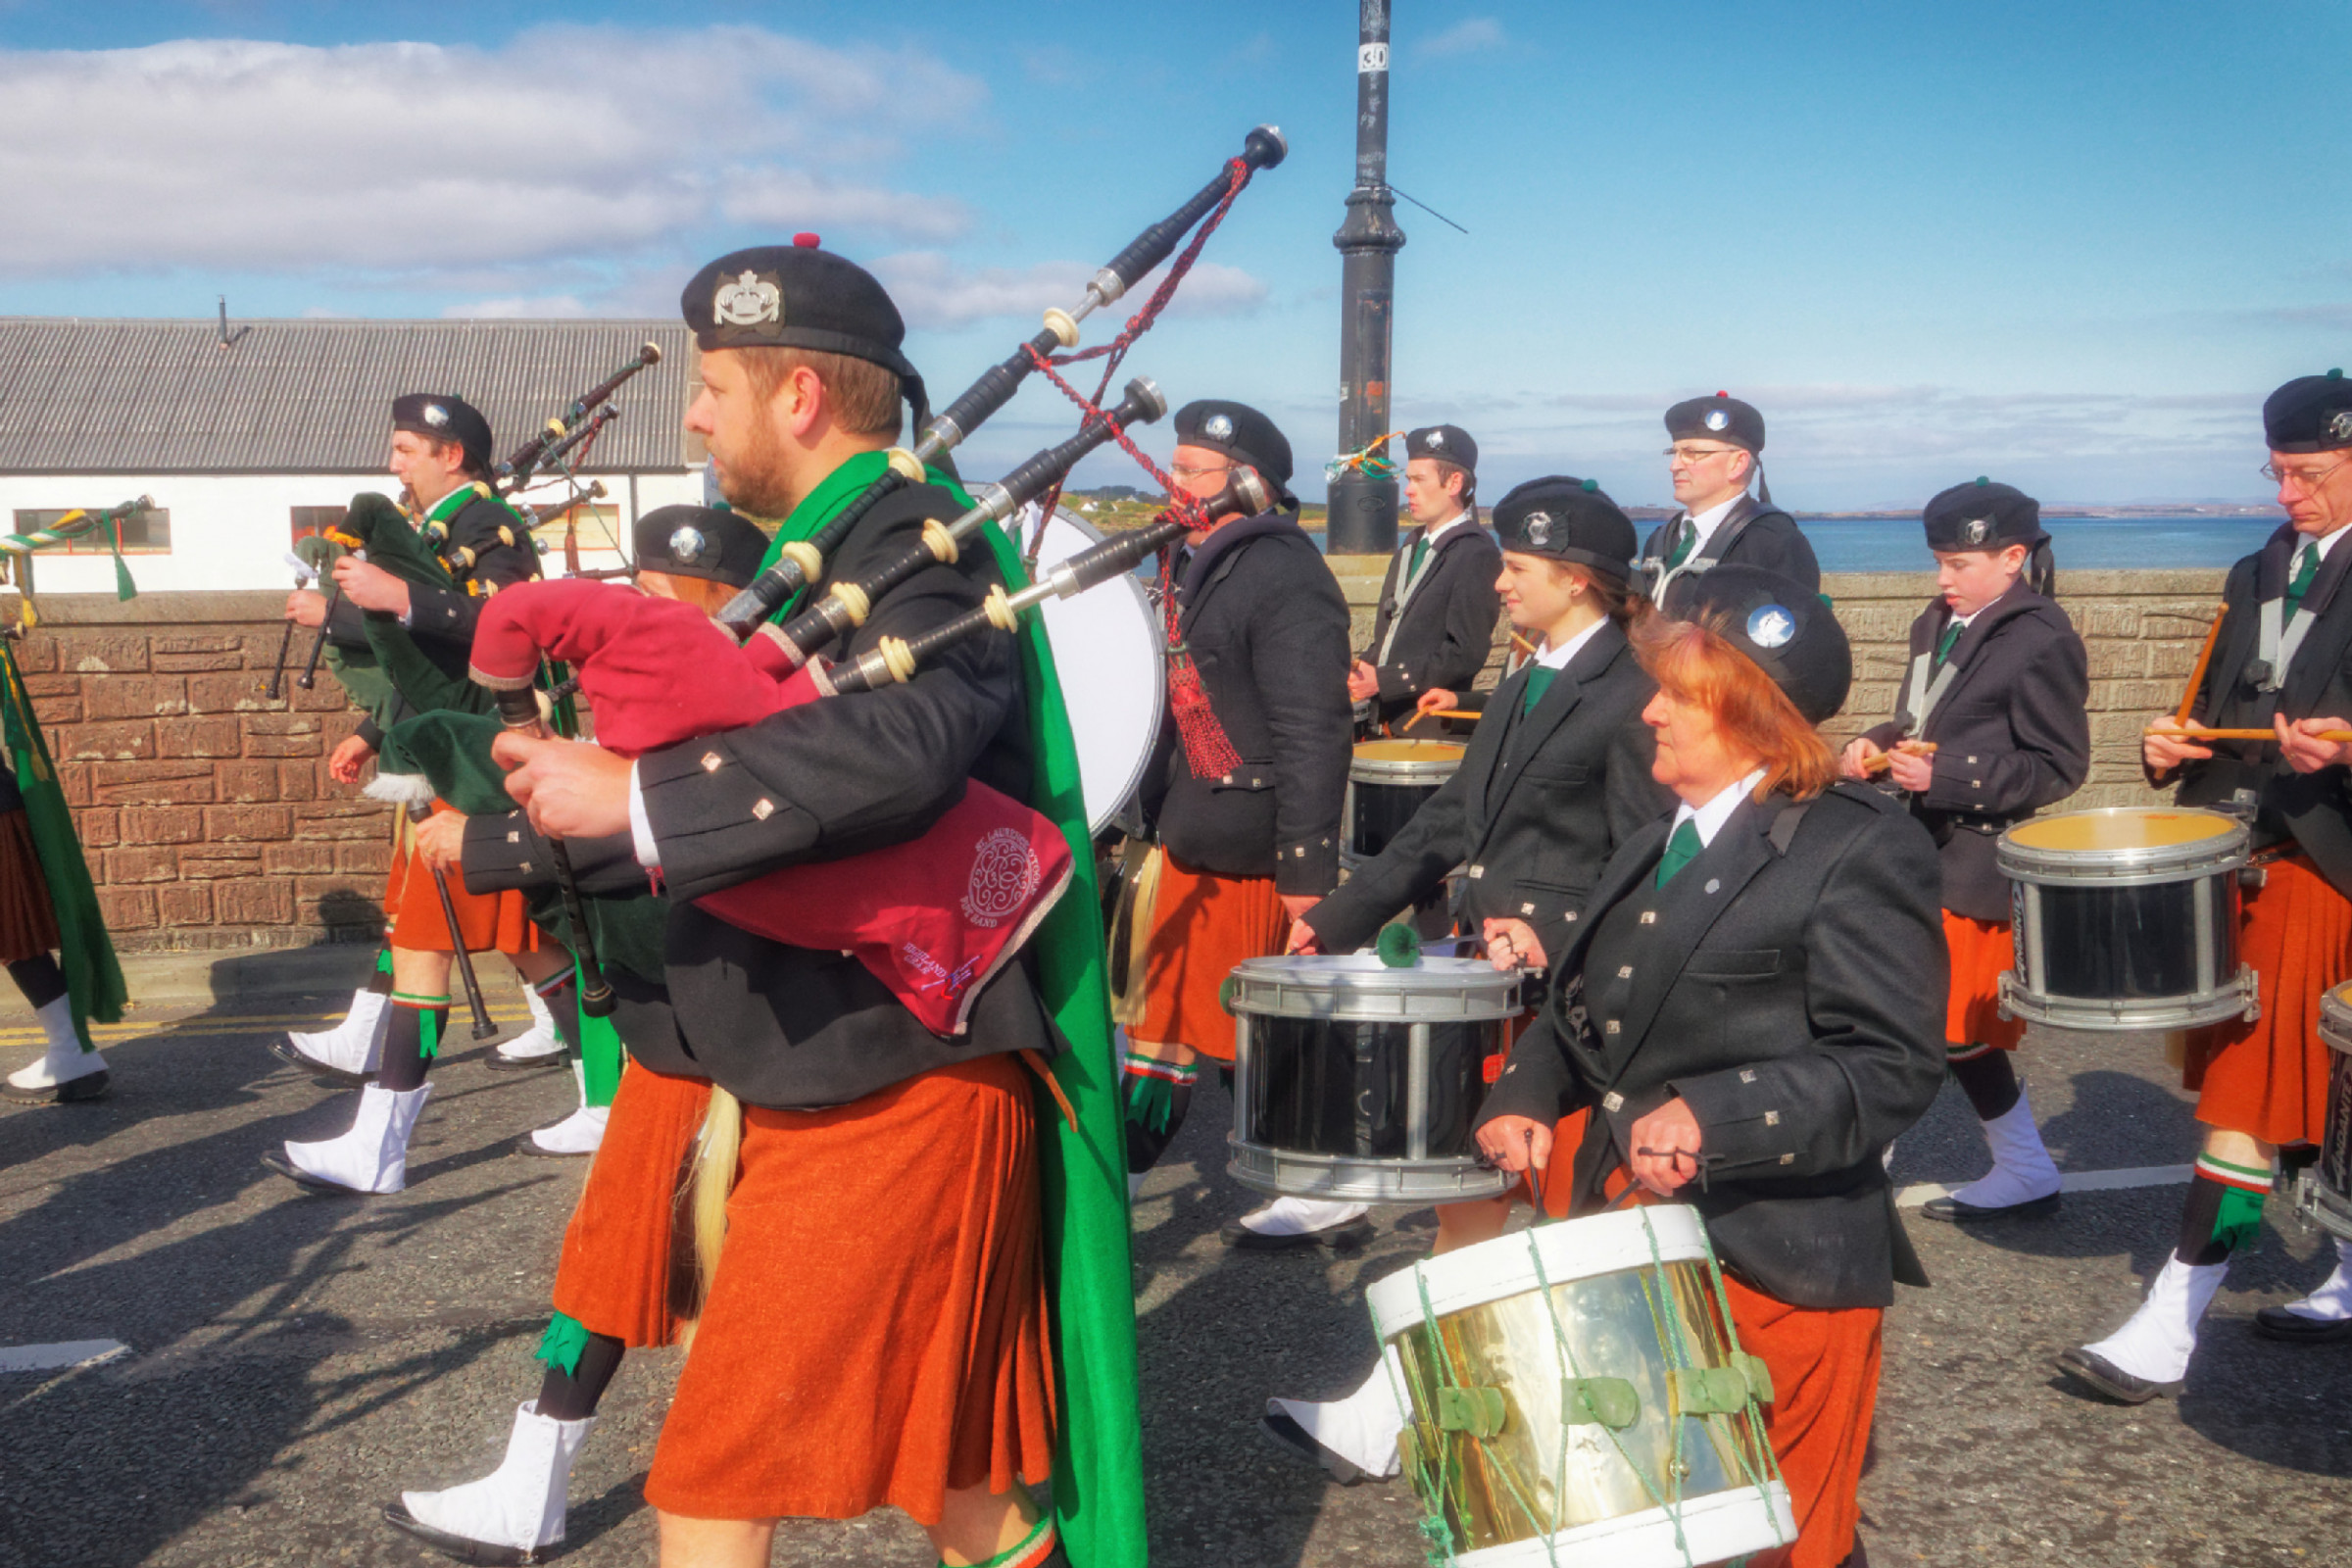 20160320130011-ie-achill-sound_parade-_DxO_13in_DxO96